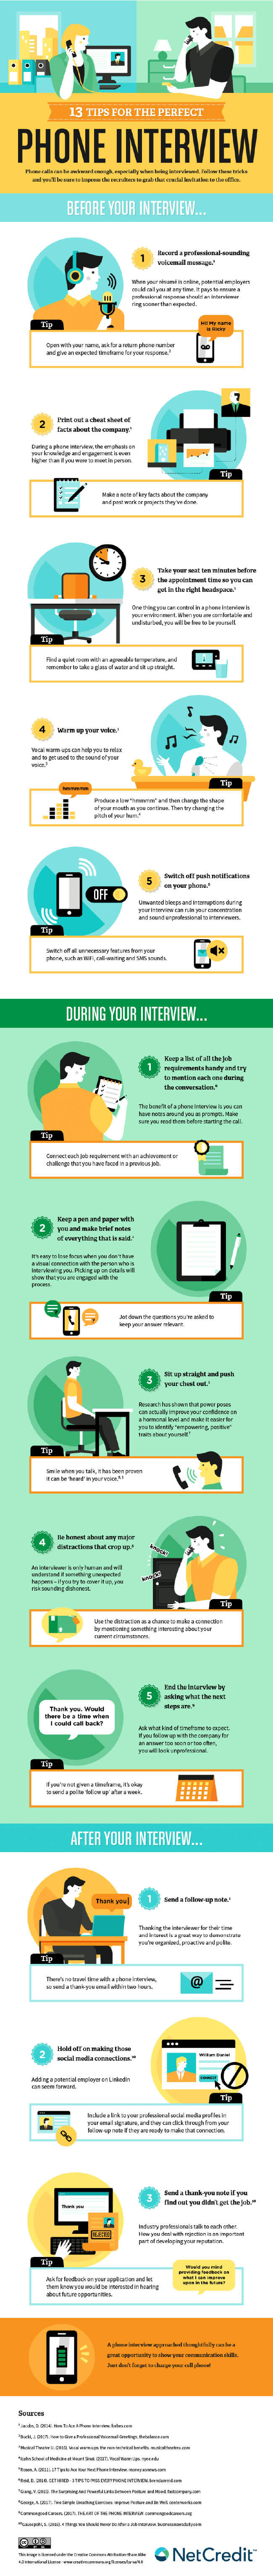 Image titled 13 tips for the perfect phone interview